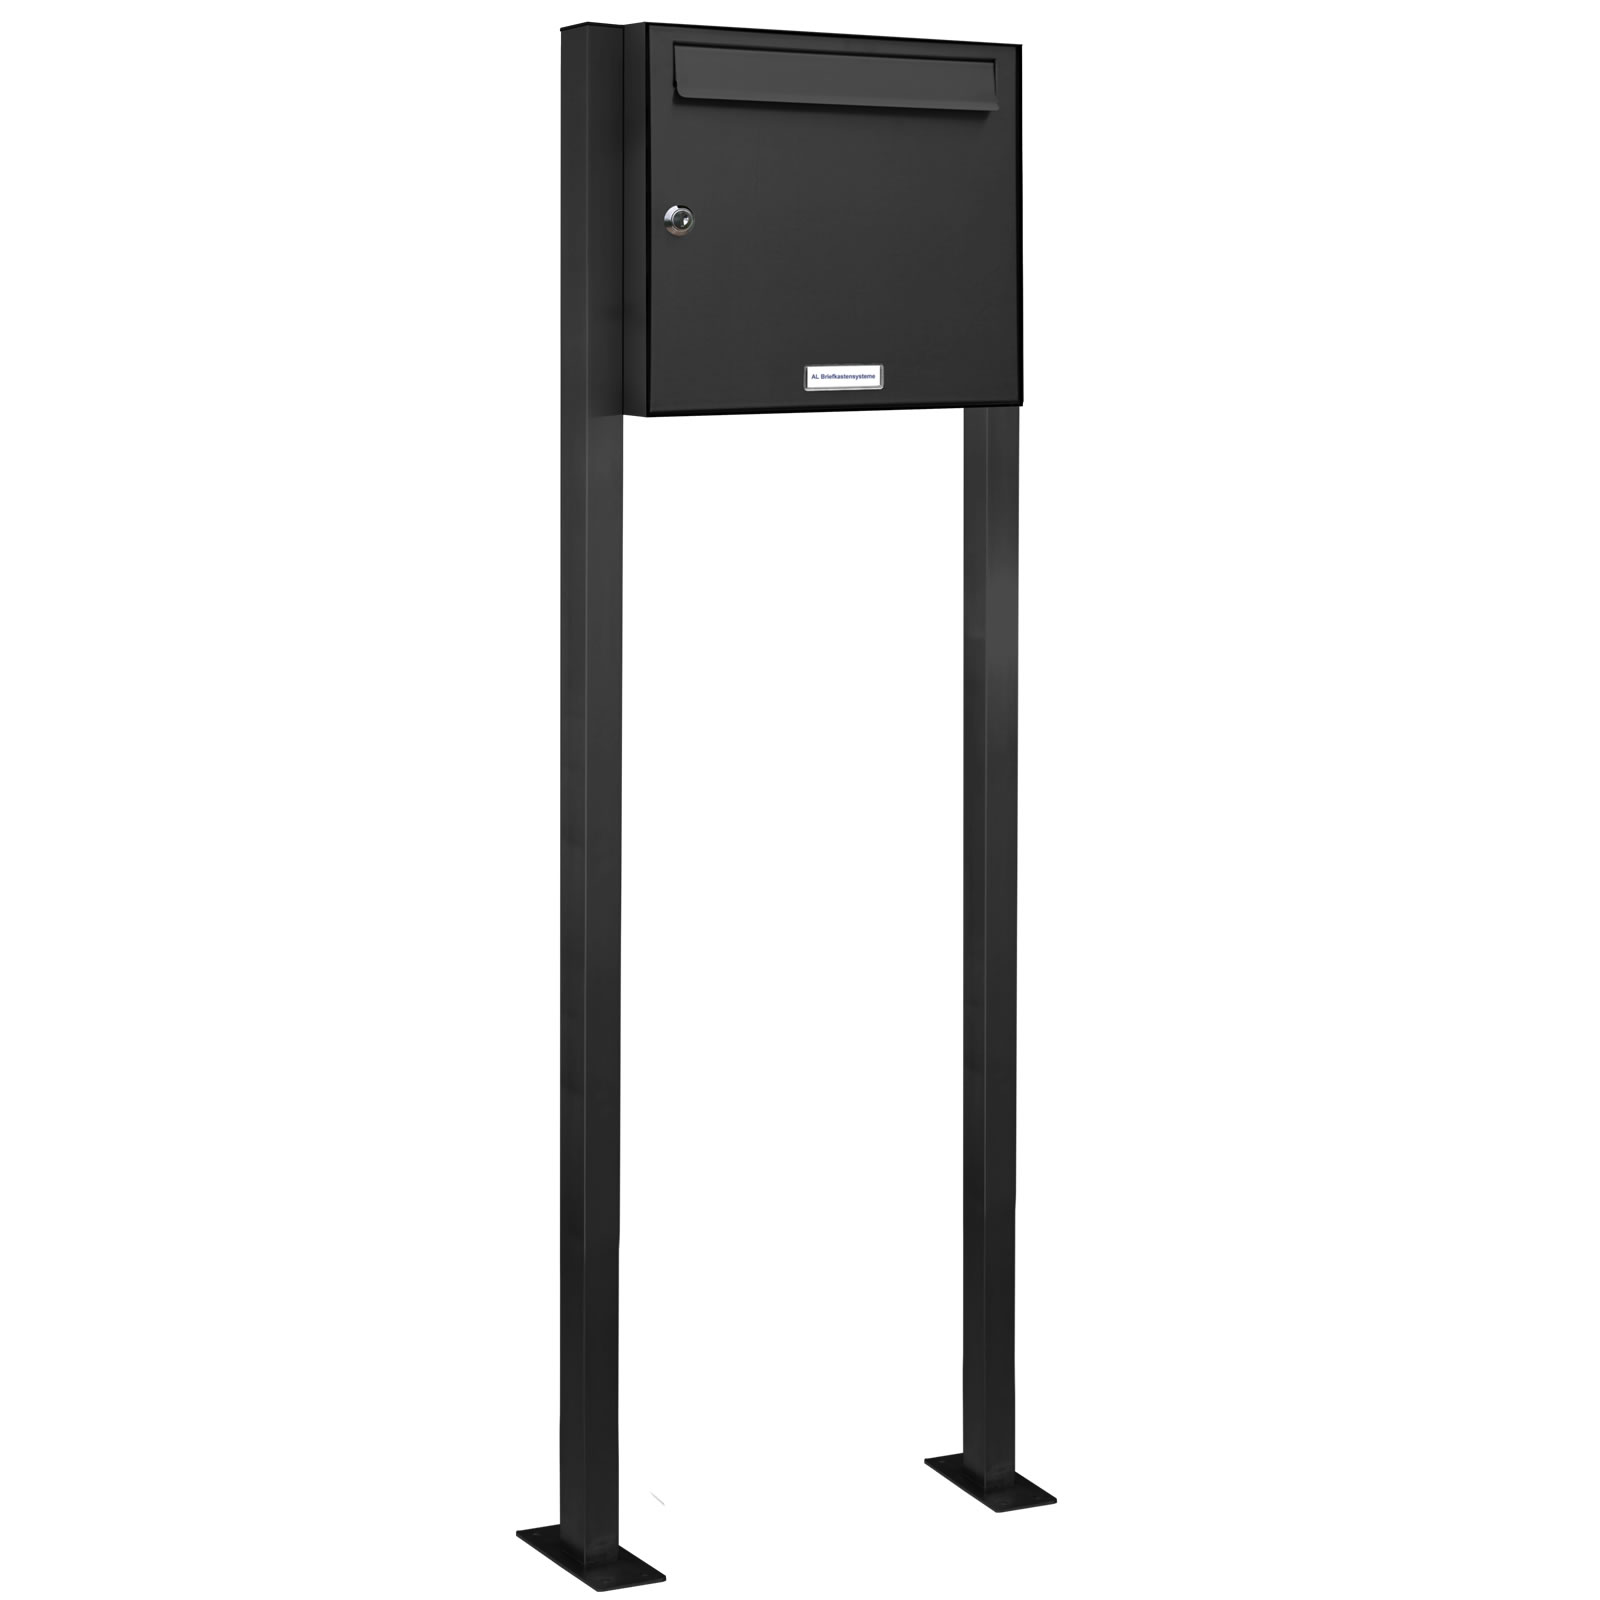 1er standbriefkasten anlage freistehend ral 7016 anthrazit ebay. Black Bedroom Furniture Sets. Home Design Ideas